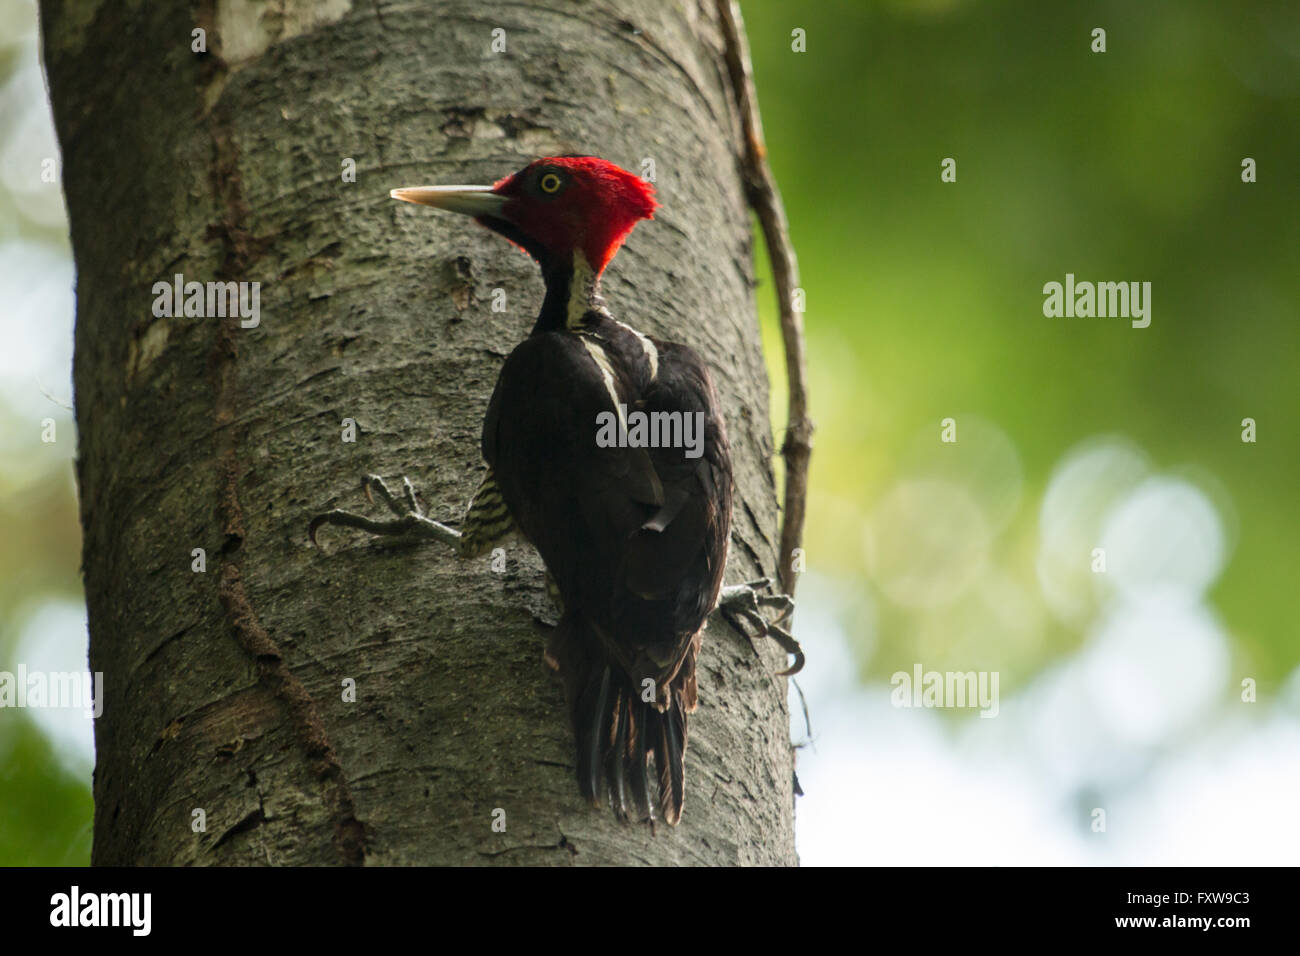 Pale-billed woodpecker - Campephilus guatemalensis - Stock Image